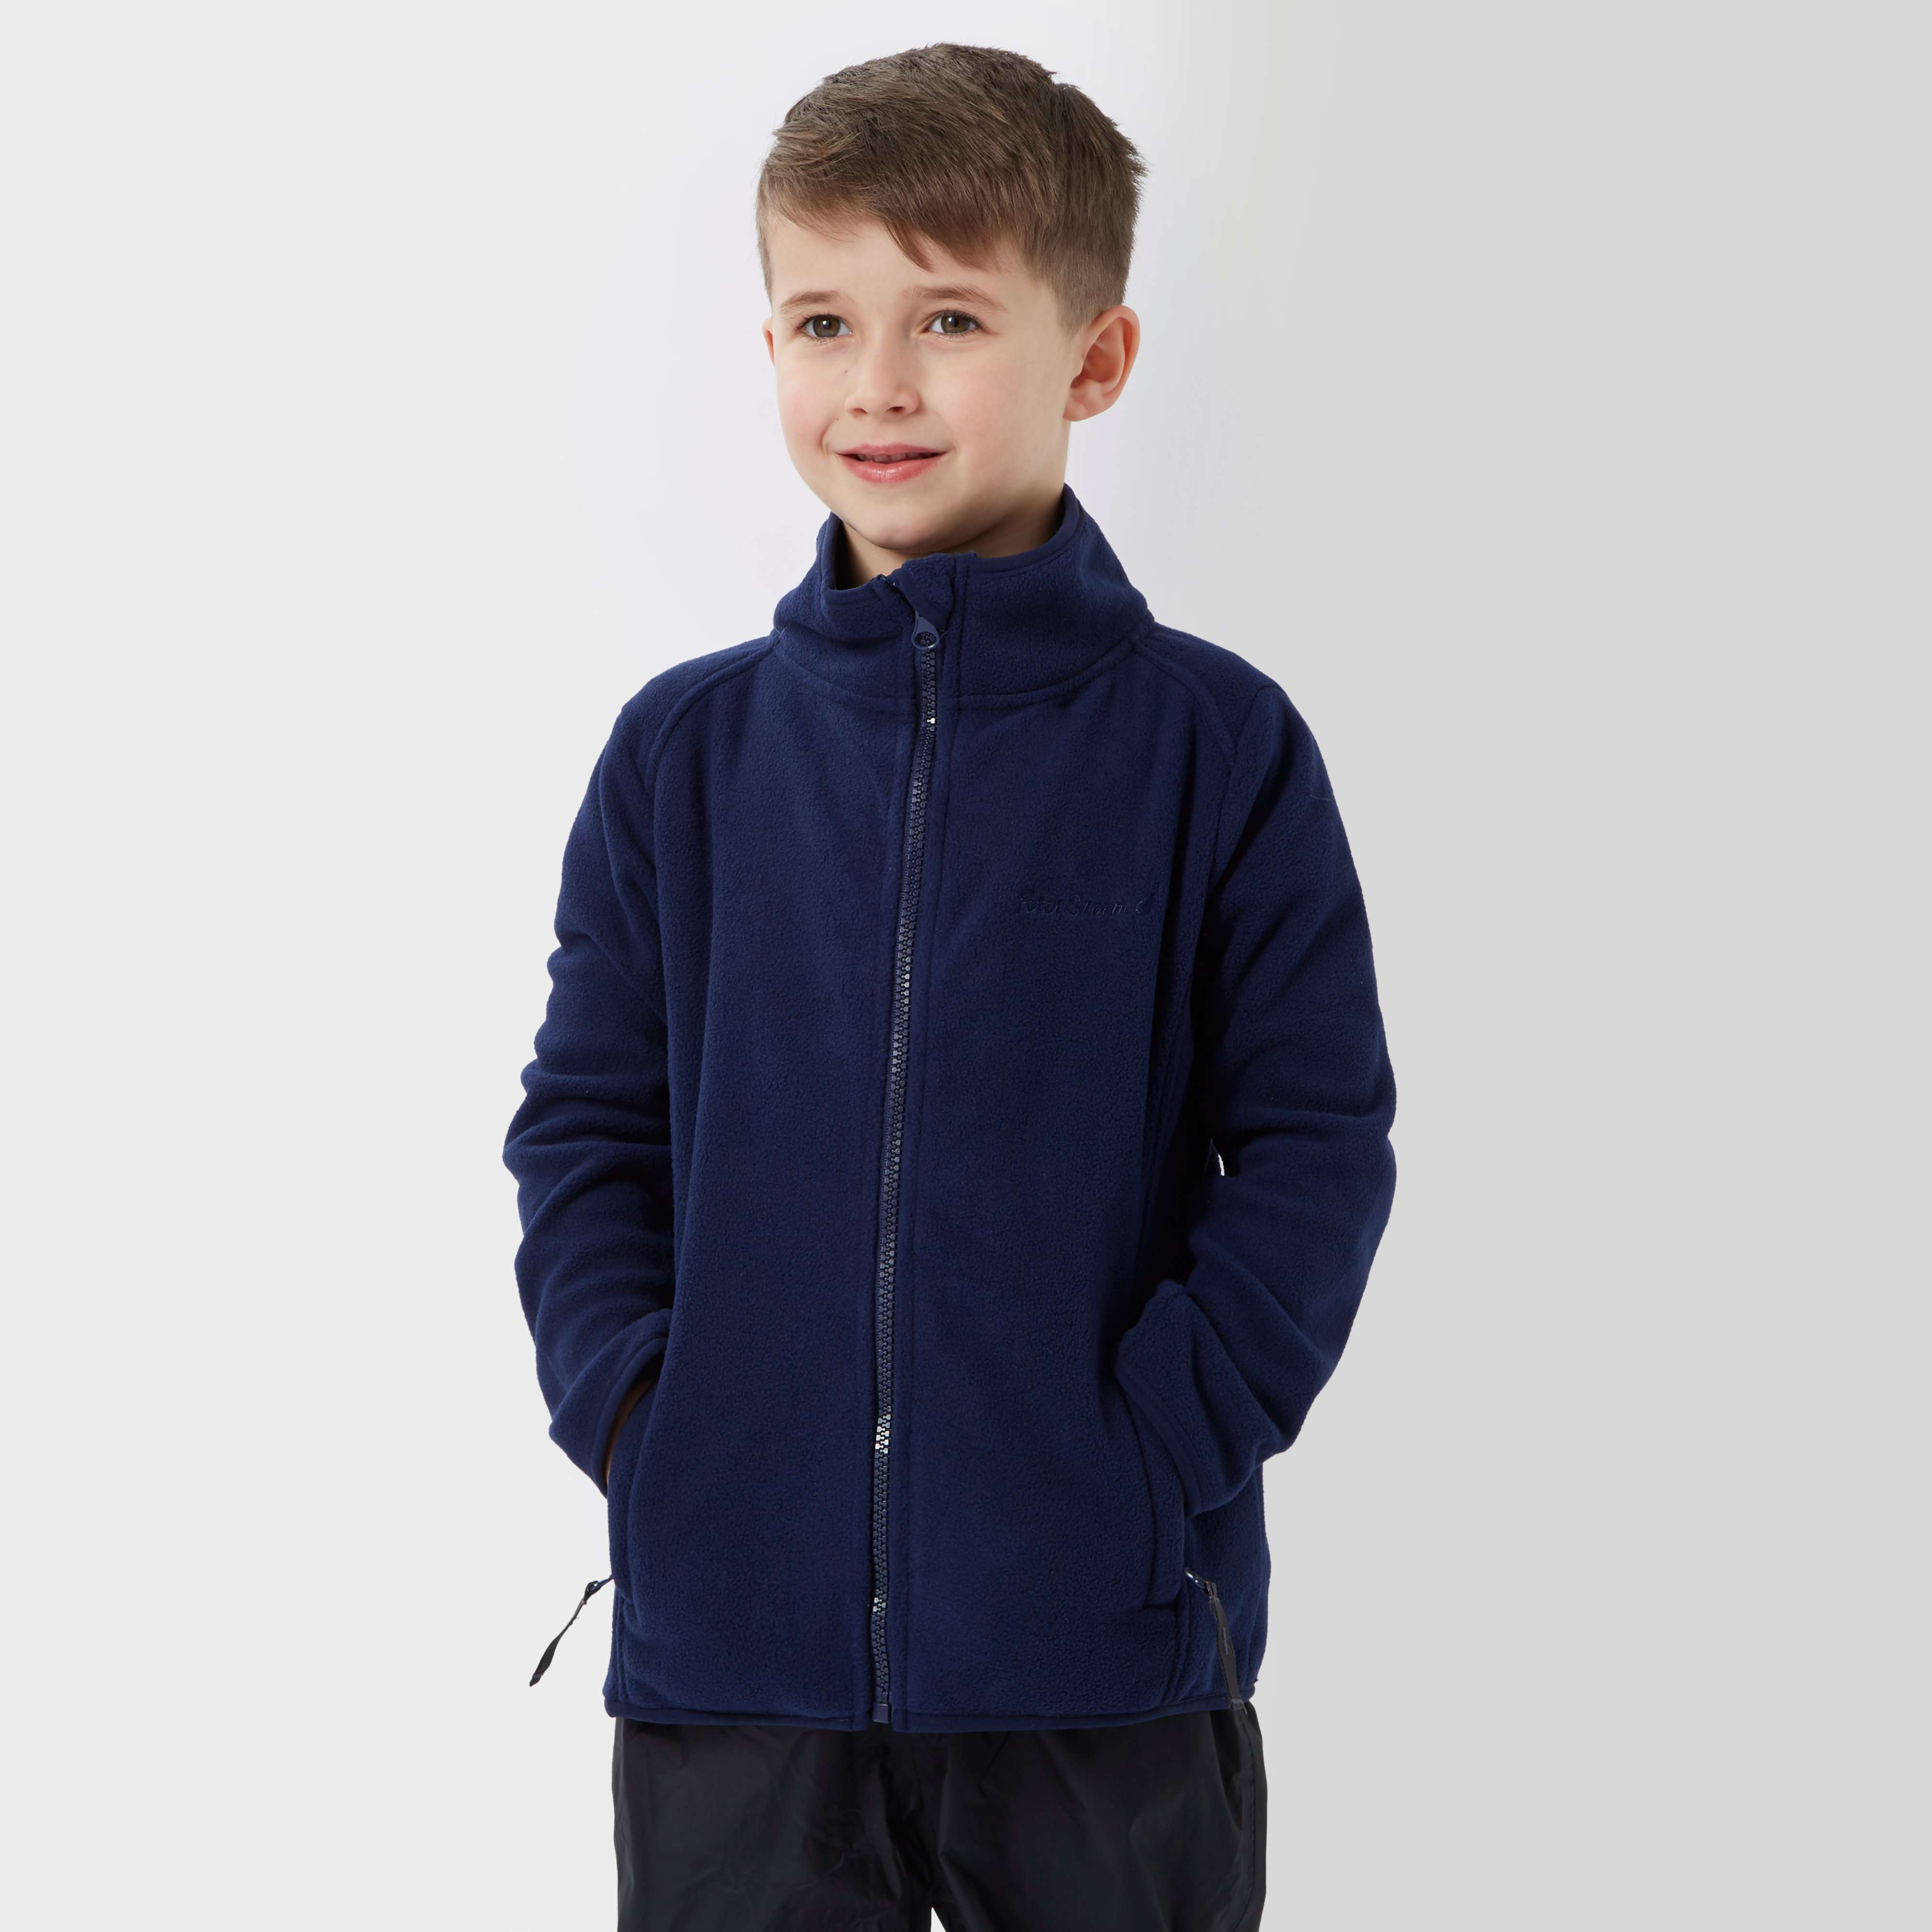 PETER STORM Kids' Unisex Stormy Full Zip Fleece